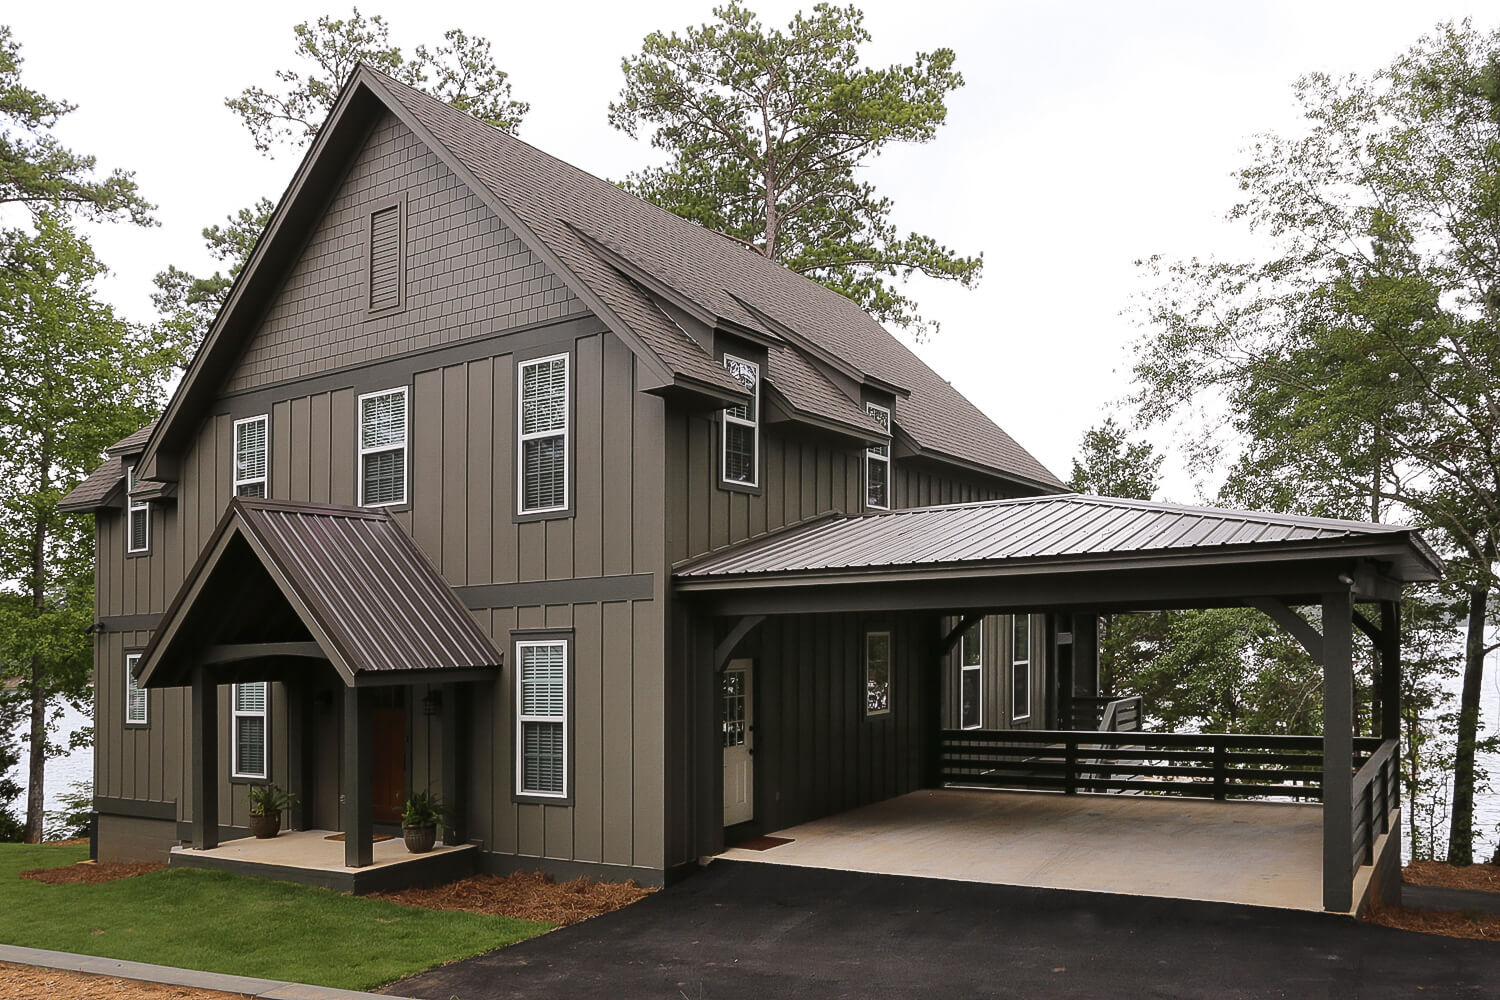 Lake Home - Rear Elevation and Carport - Designed by Foshee Architecture